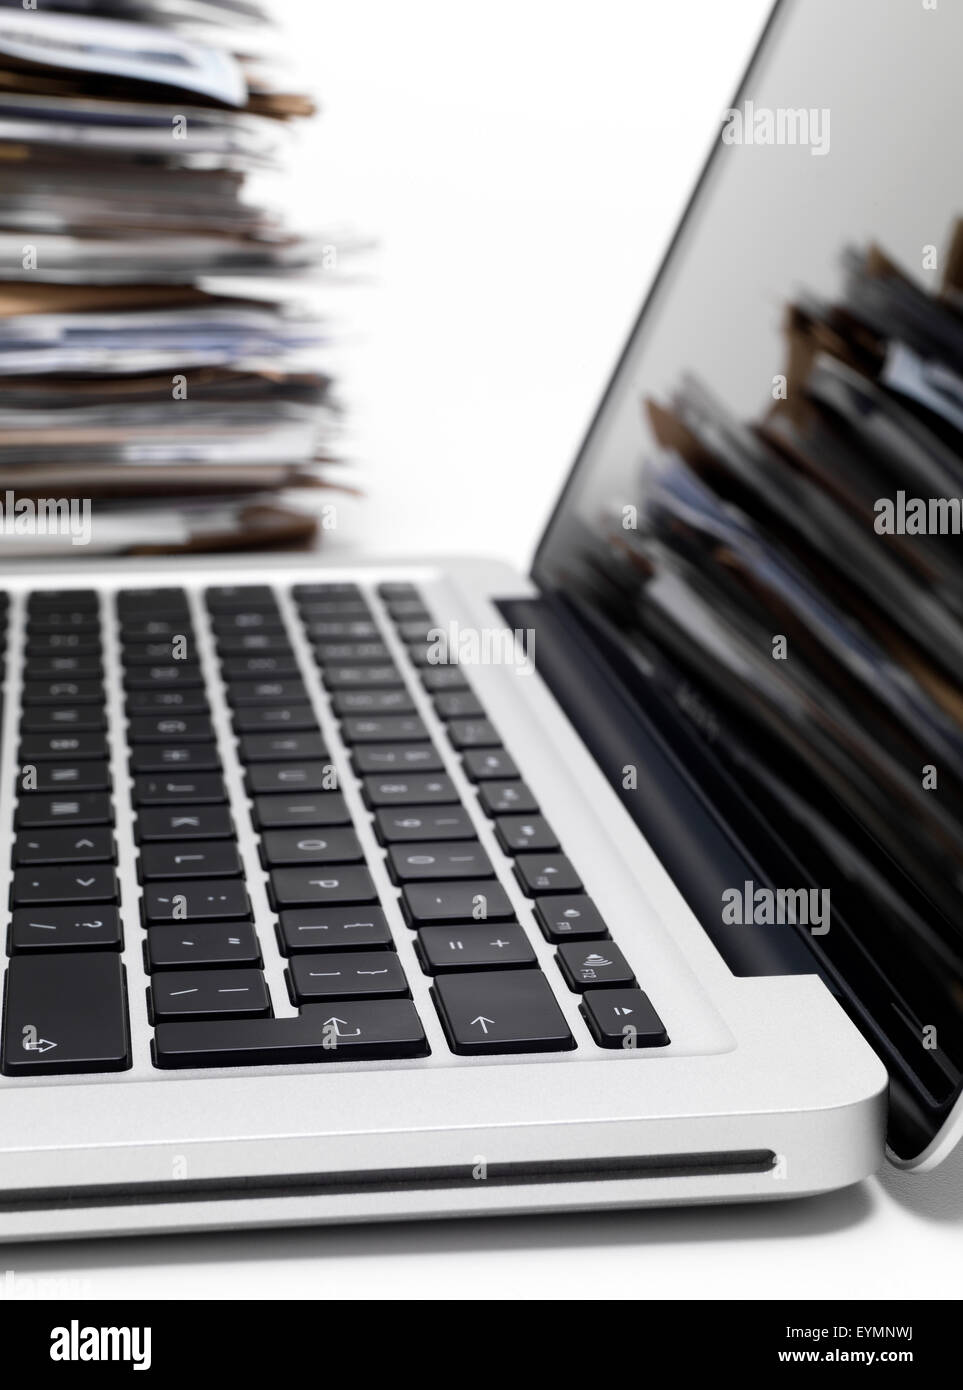 Laptop with a pile of files in background - Stock Image